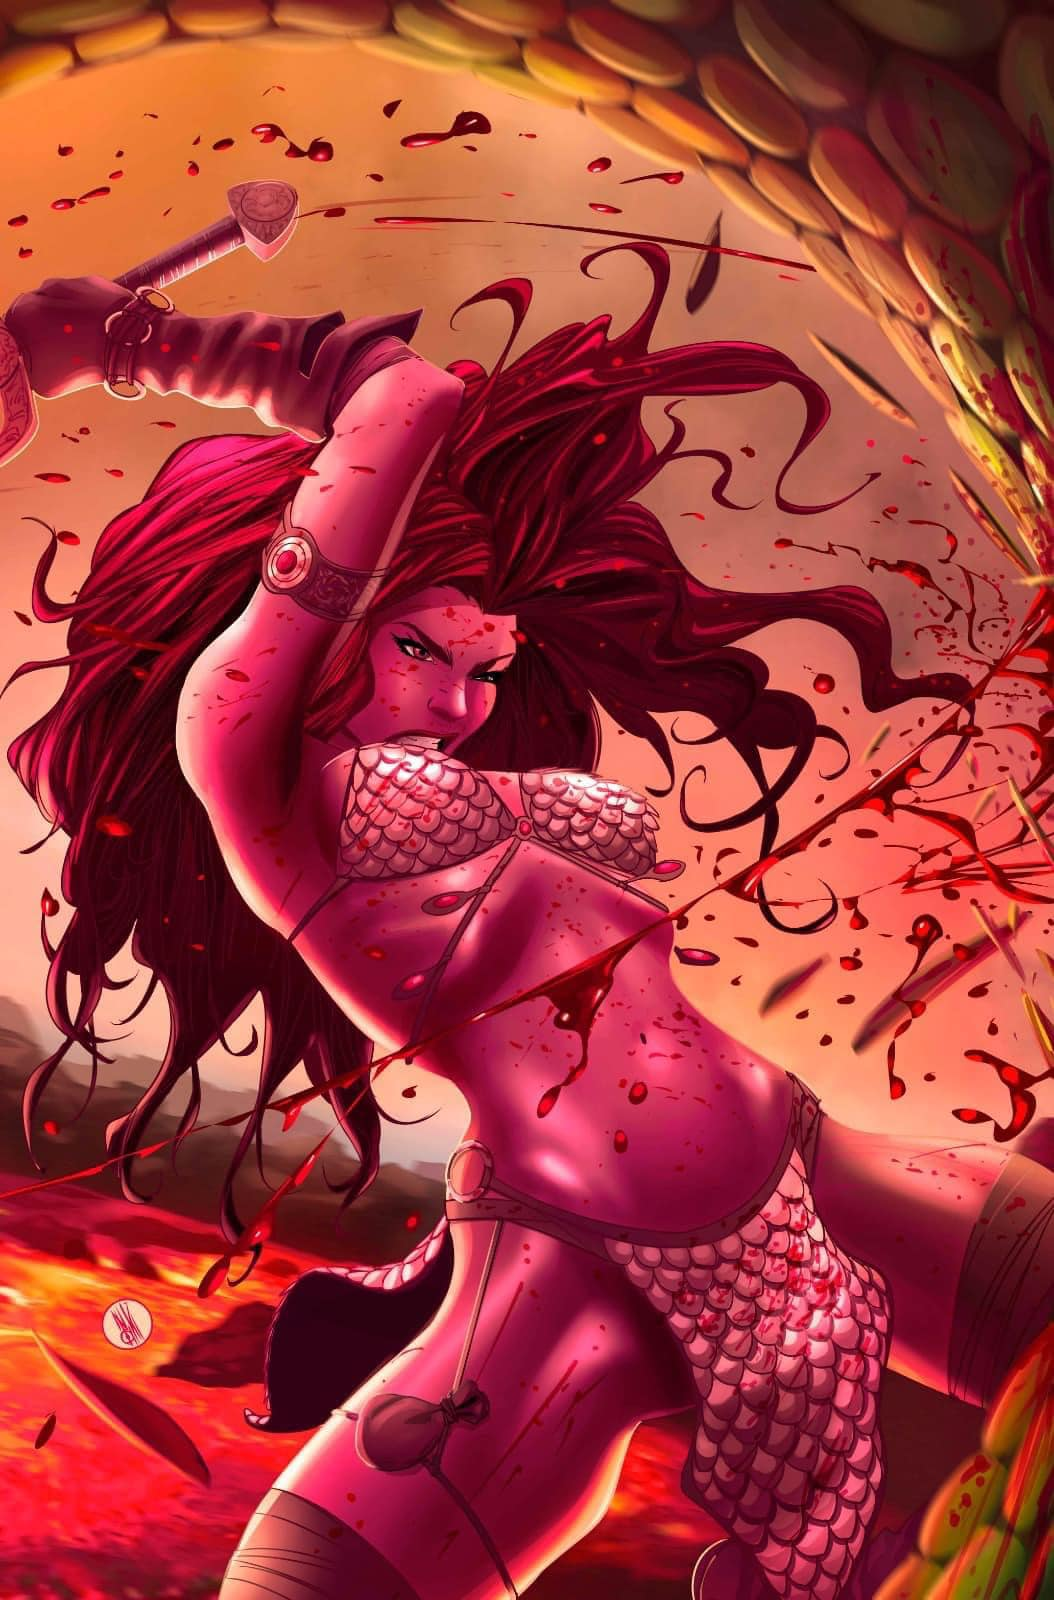 Invincible Red Sonja #1 Inaki Miranda Exclusive